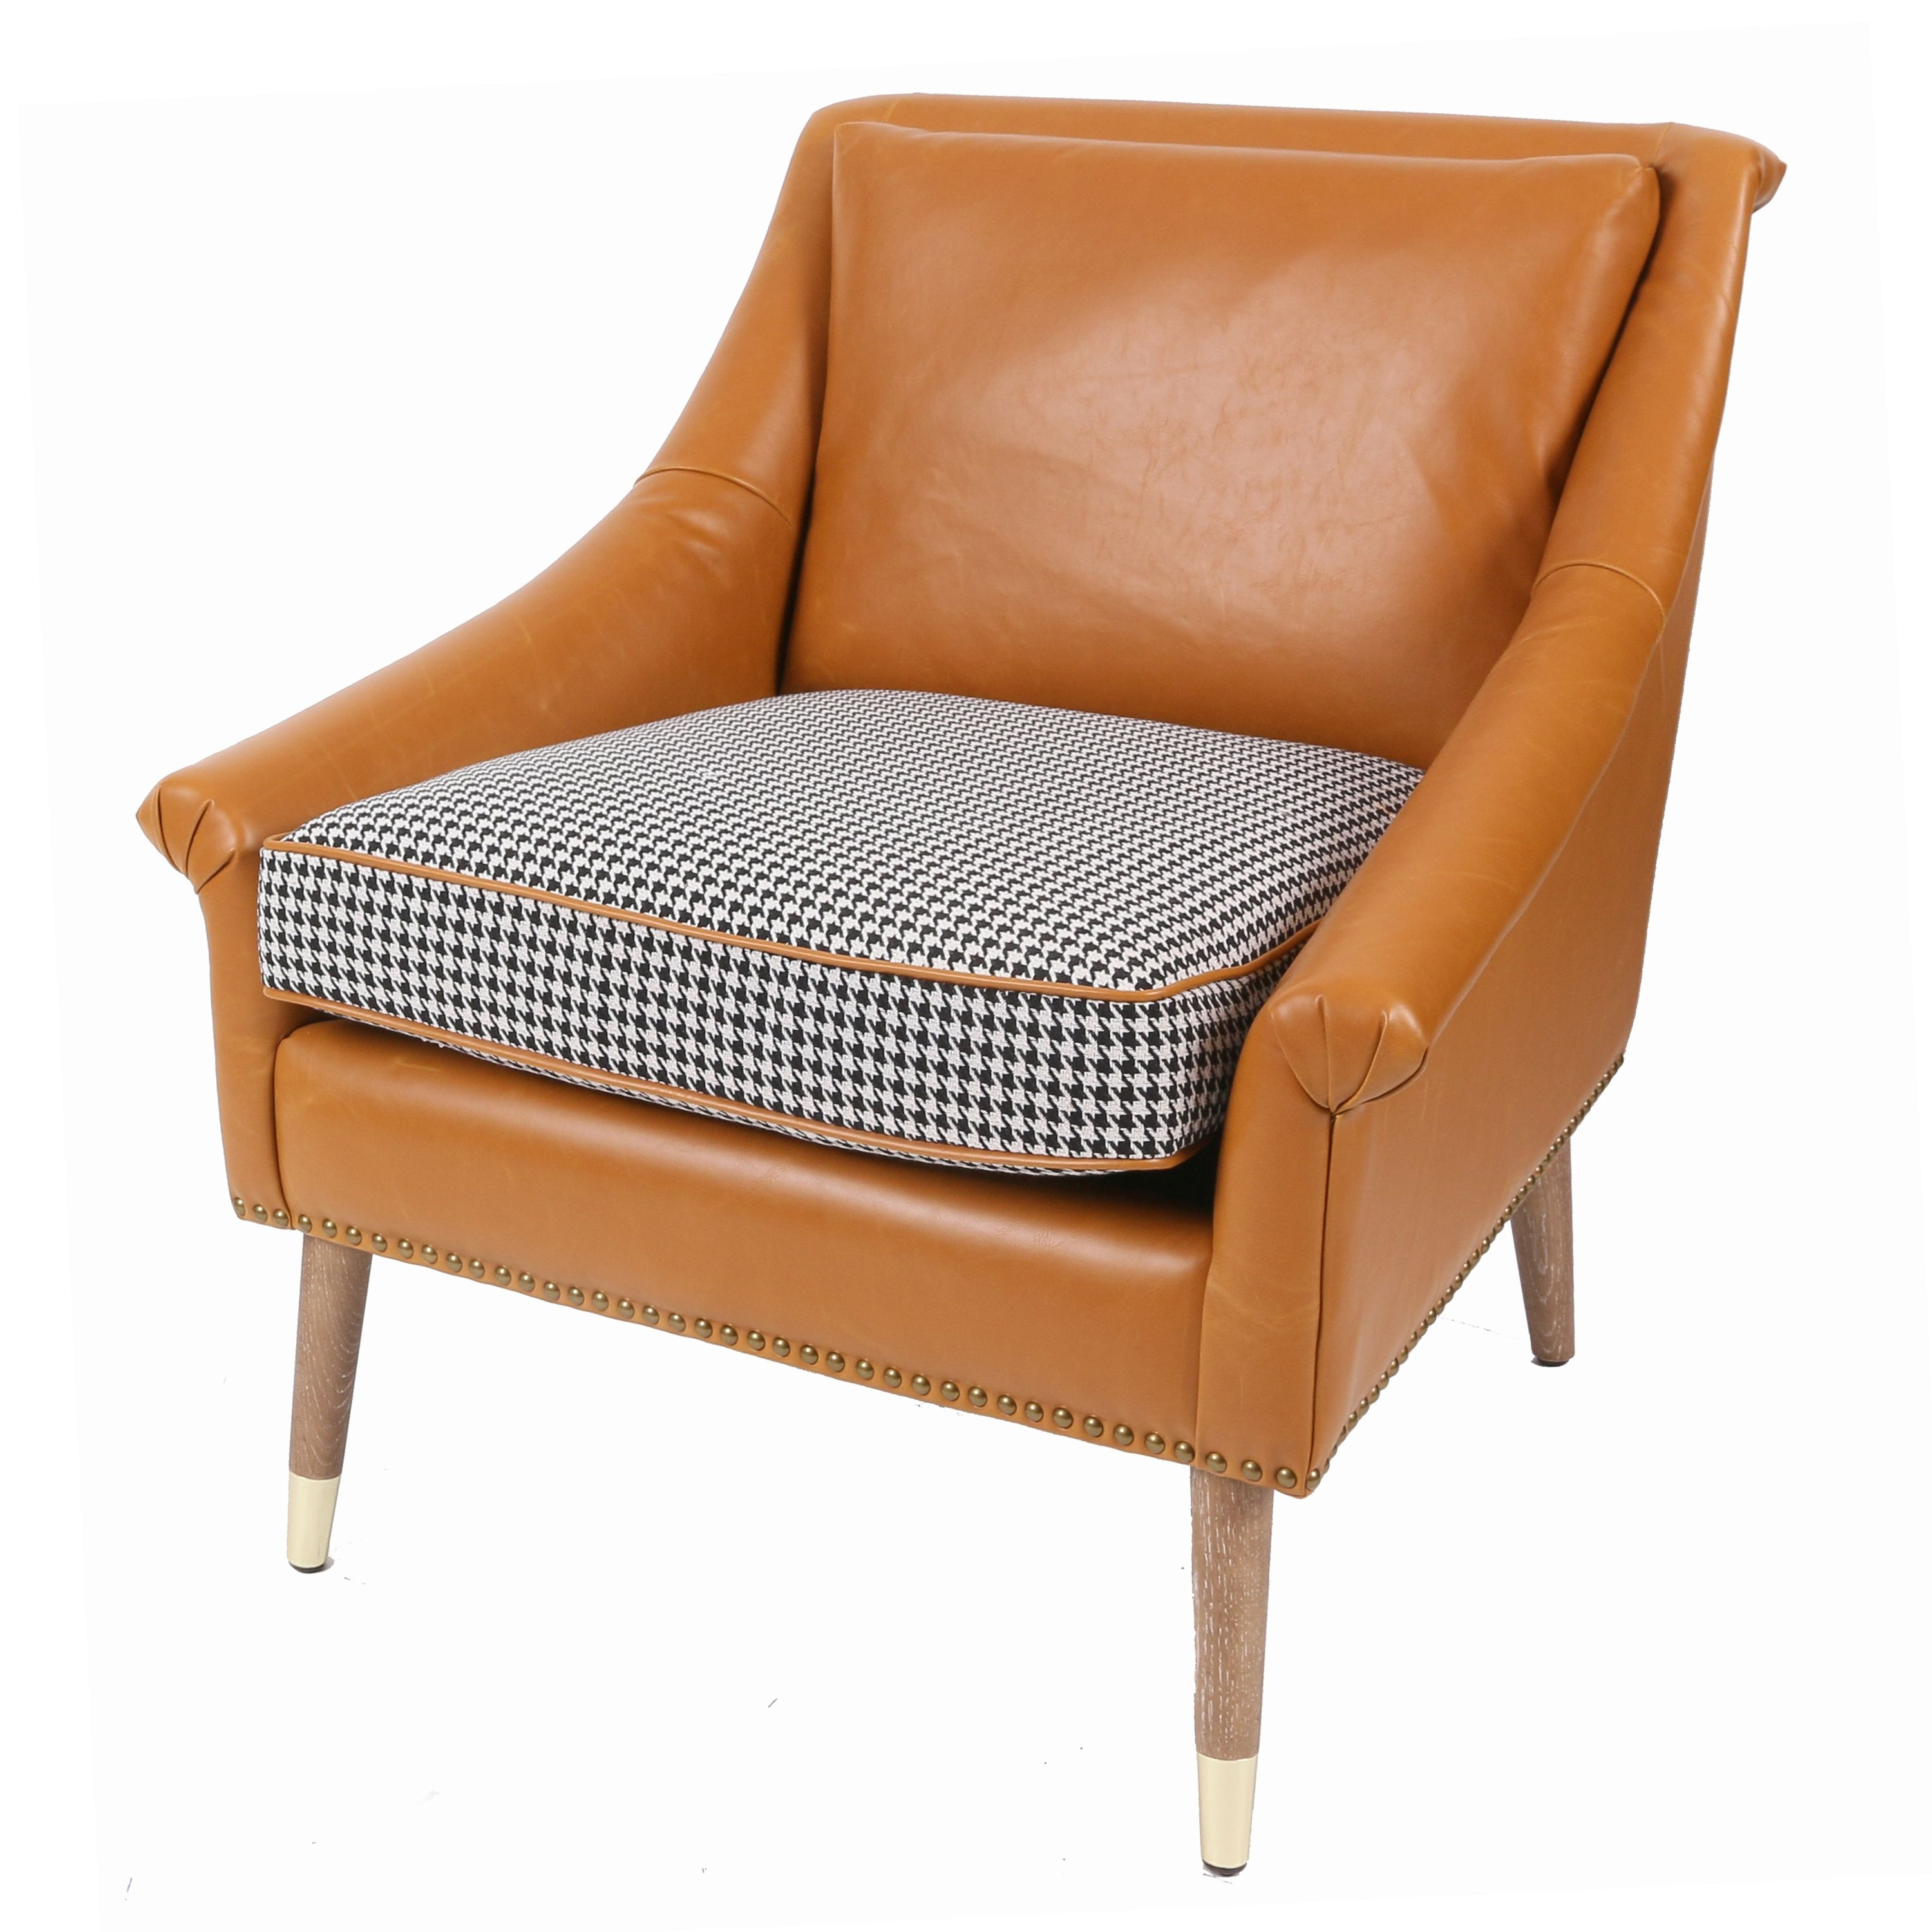 Leather Accent Chairs Metal Legs Caramel.Etude Kd Accent Chair Weathered Smoke W Gold Metal Tip Legs Black